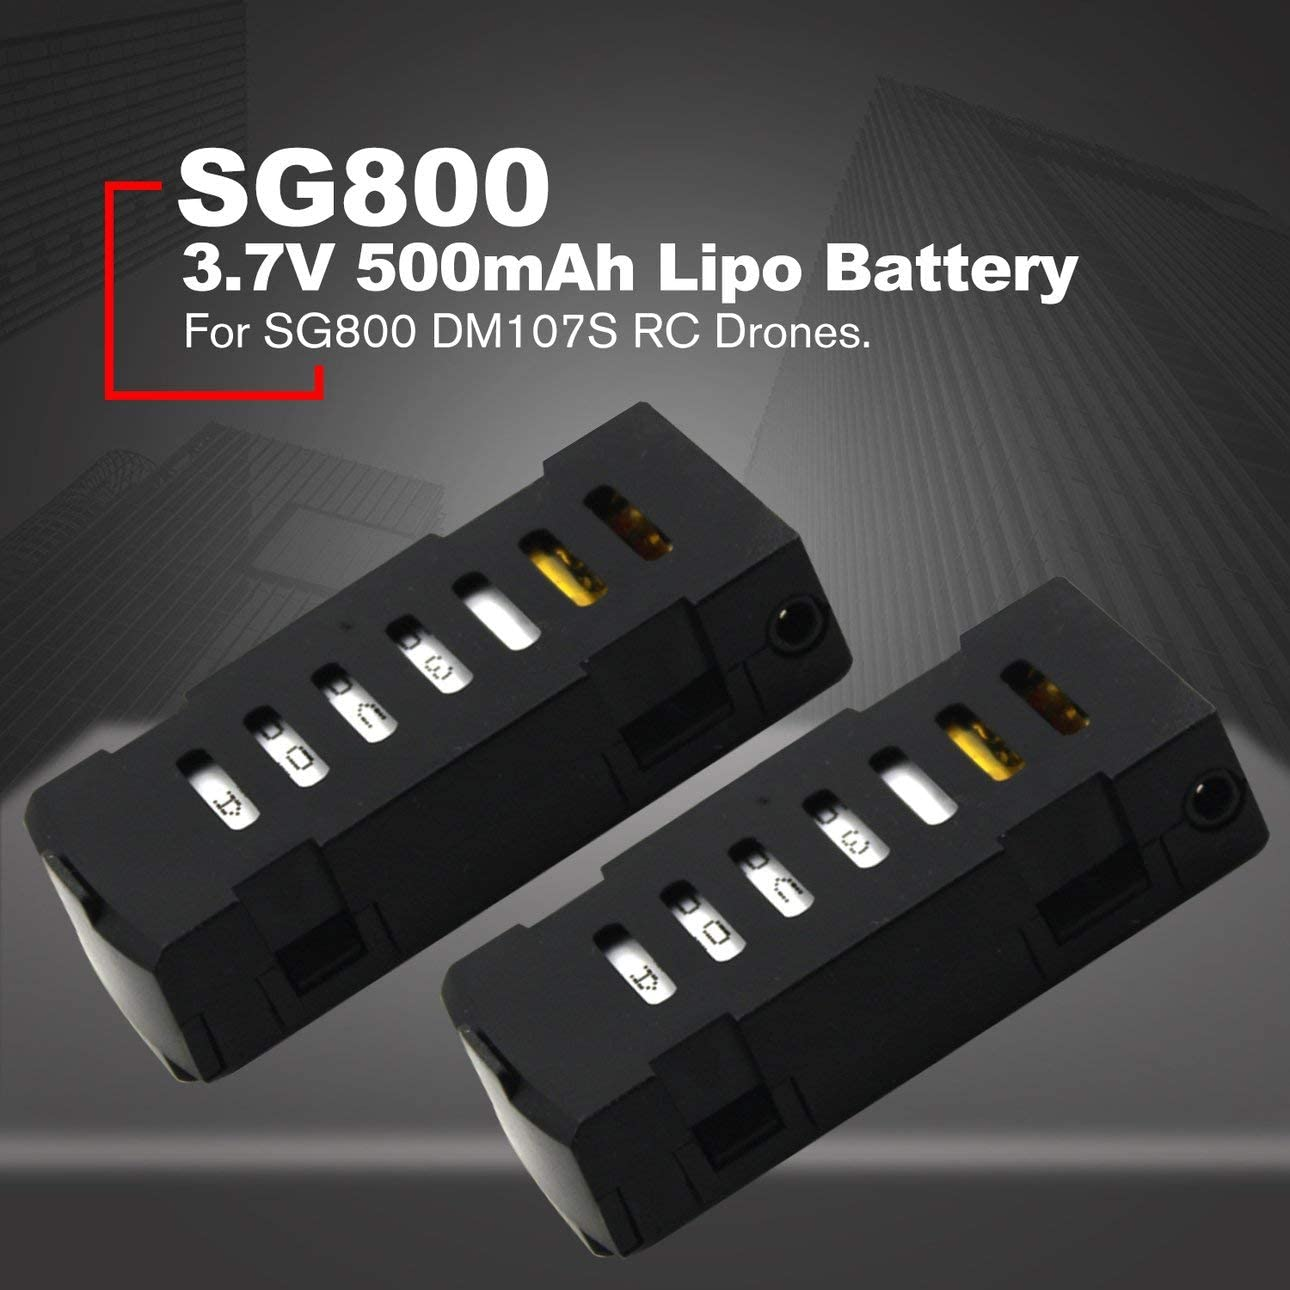 RCTOYCO 500mAh 3.7V Lipo Battery Helicopter Accessories For SG800 RC Drones